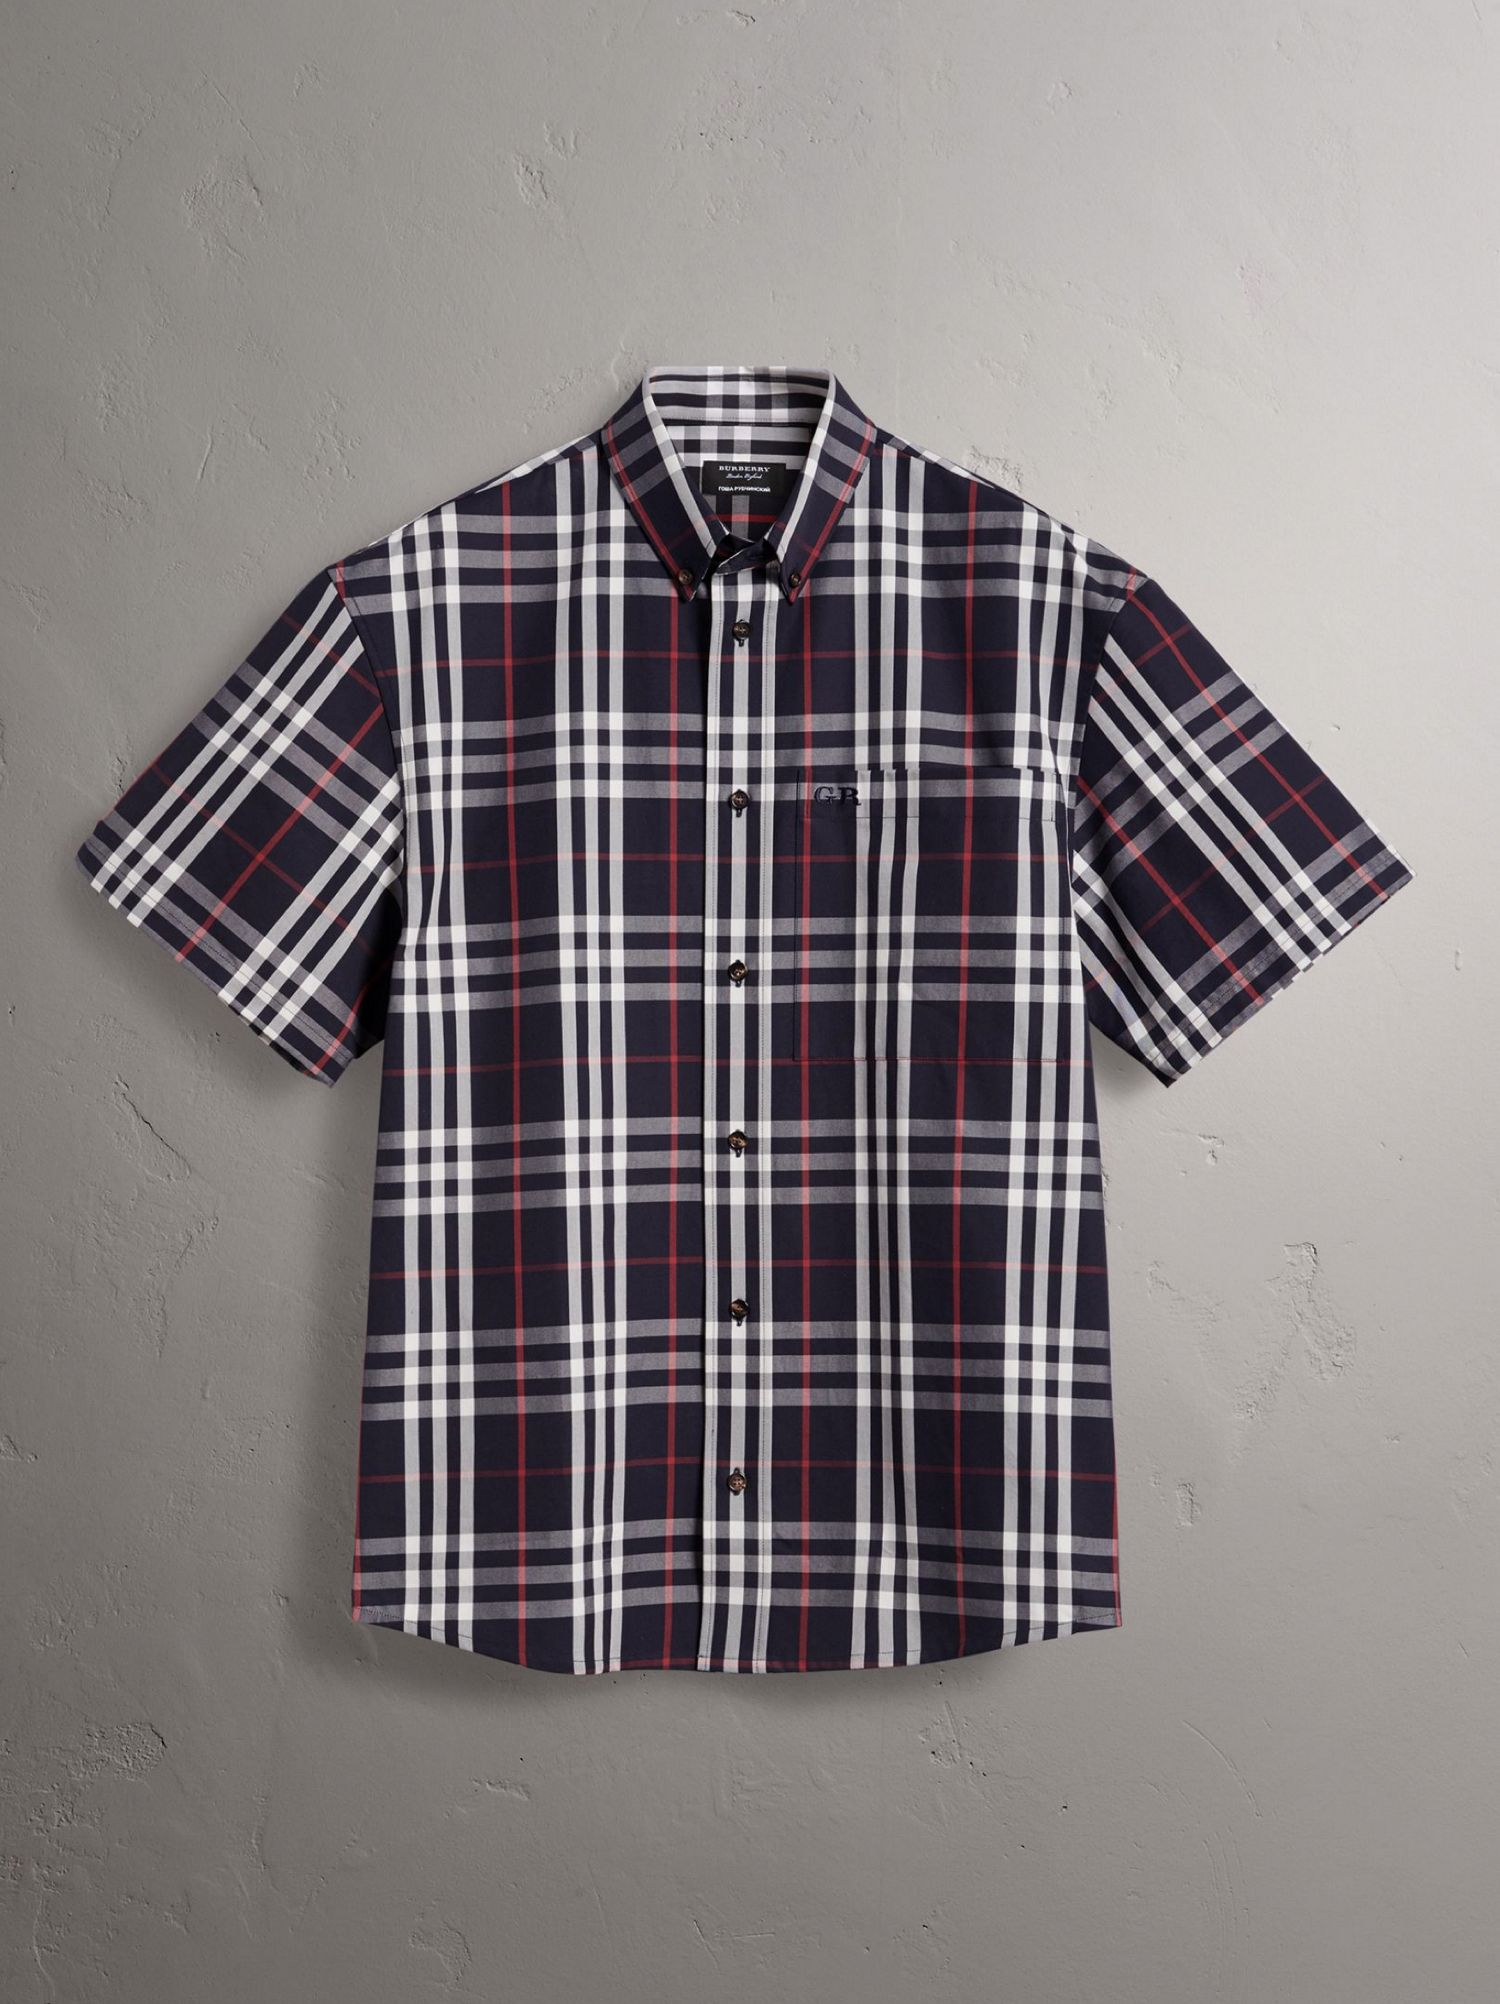 Gosha x Burberry Short-sleeve Check Shirt in Navy